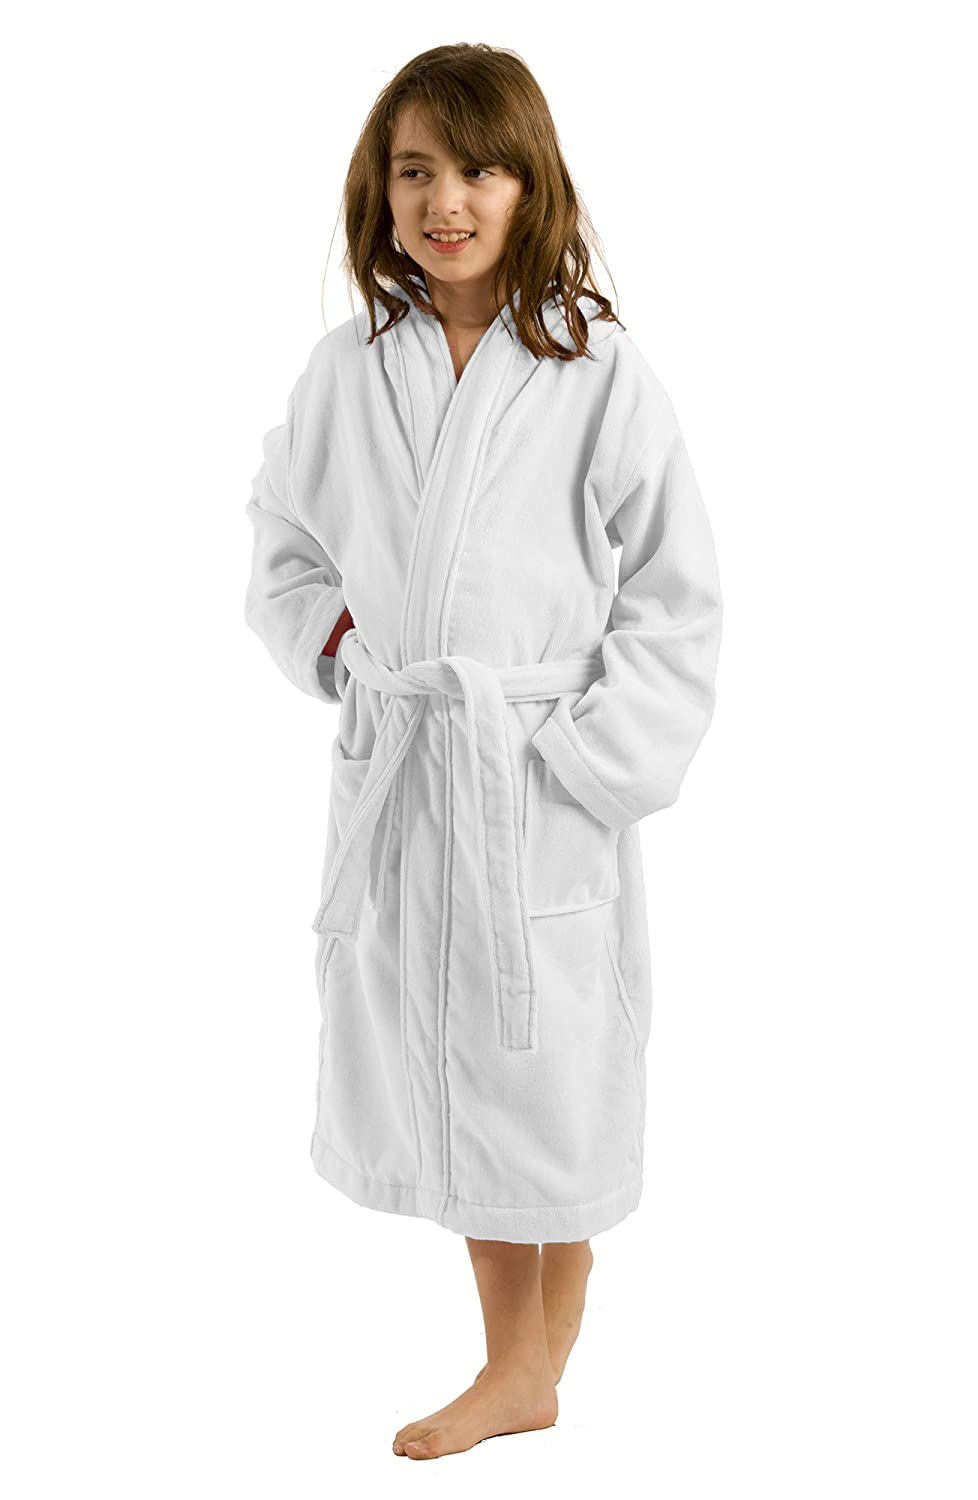 100/% Cotton Kids Bathrobe robesale Unisex Terry Cloth Hooded Robe for Girl and Boy